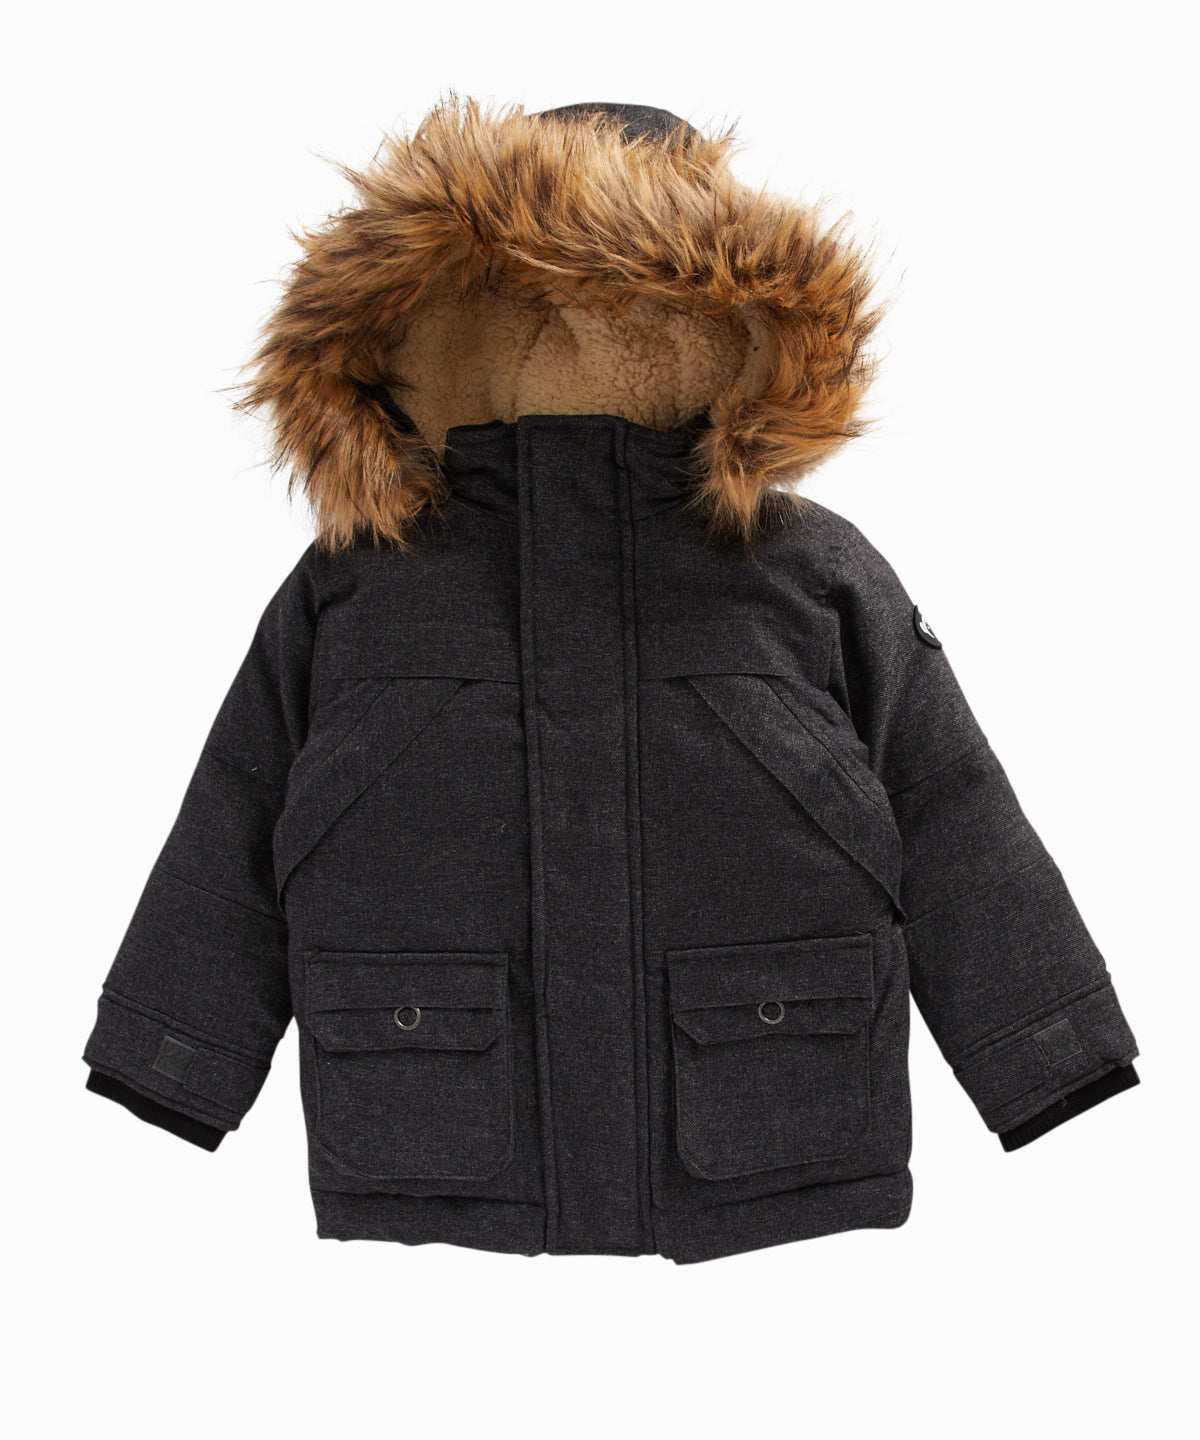 Denali Faux Fur Trim Coat